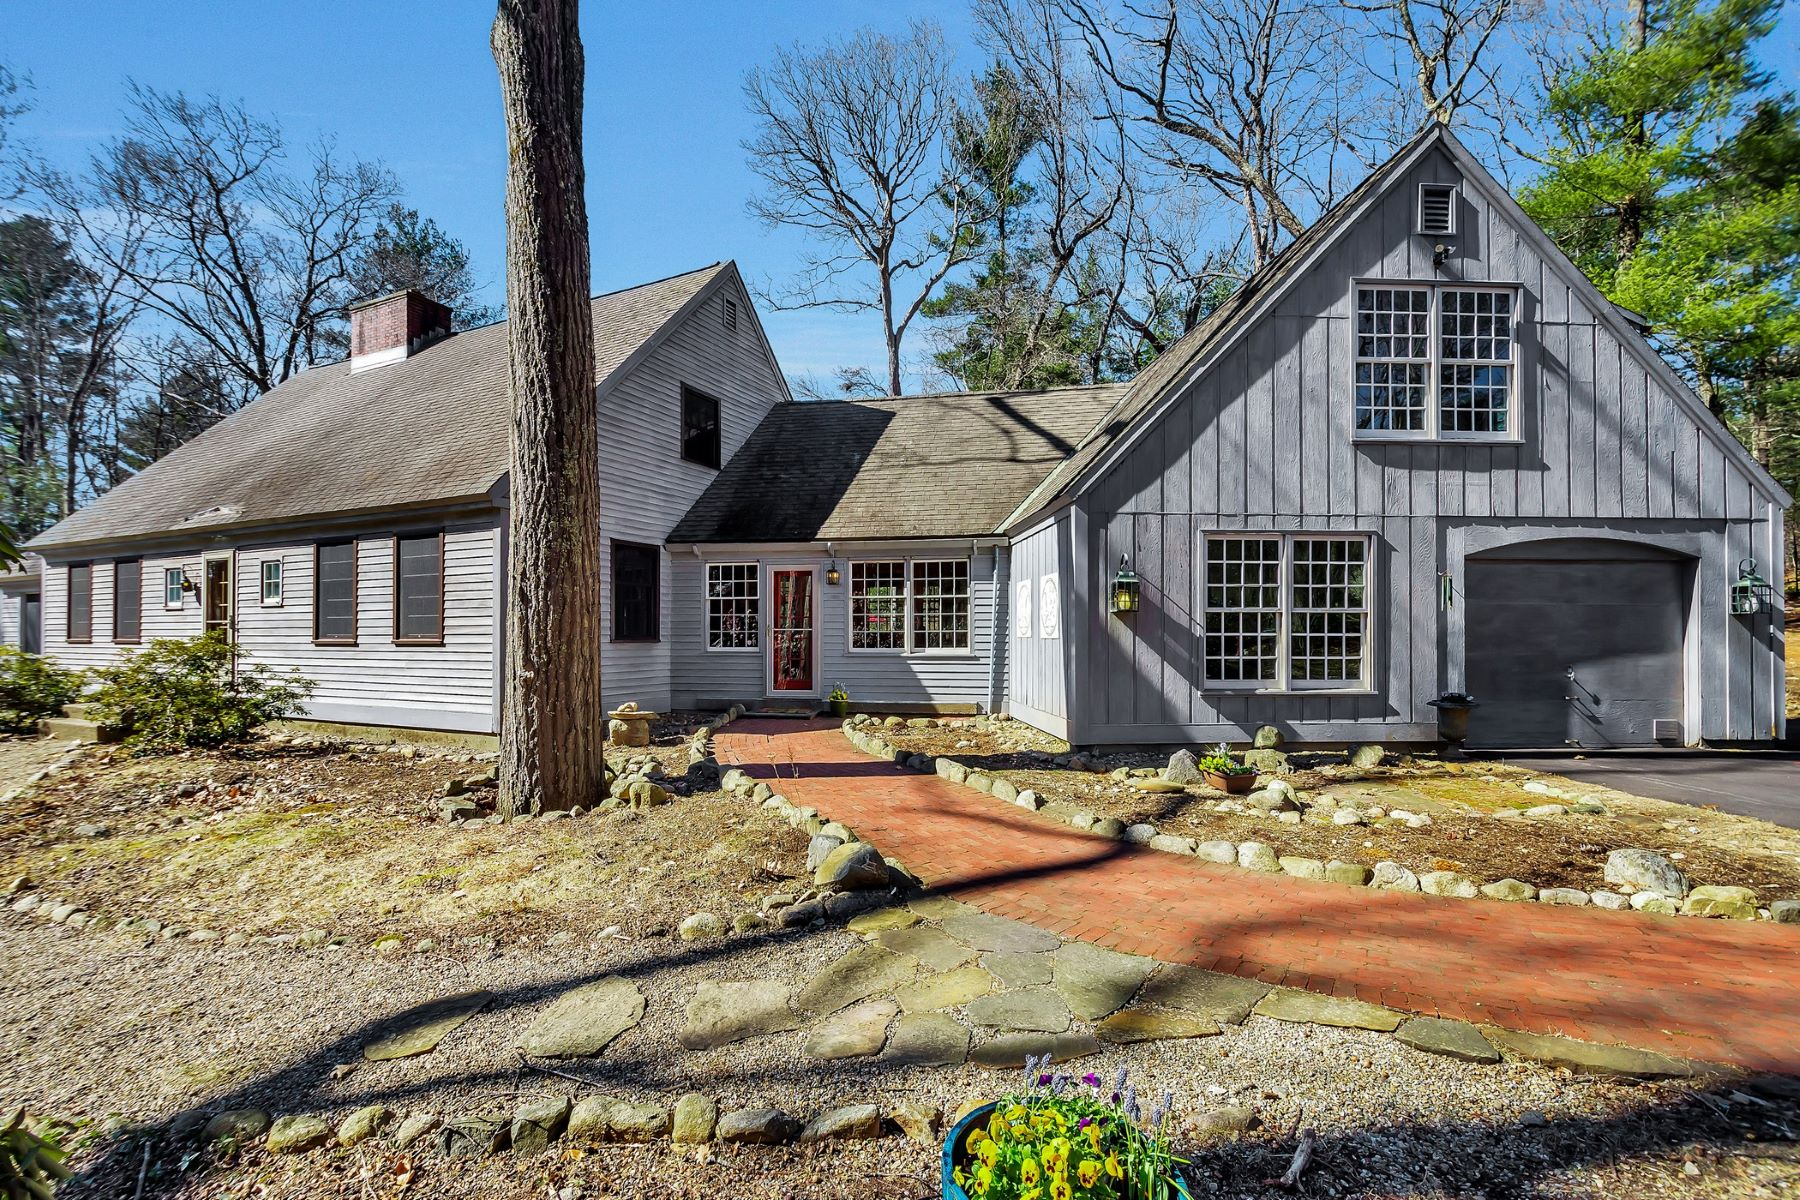 Single Family Home for Active at 8 Todd Pond Road, Lincoln 8 Todd Pond Rd Lincoln, Massachusetts 01773 United States